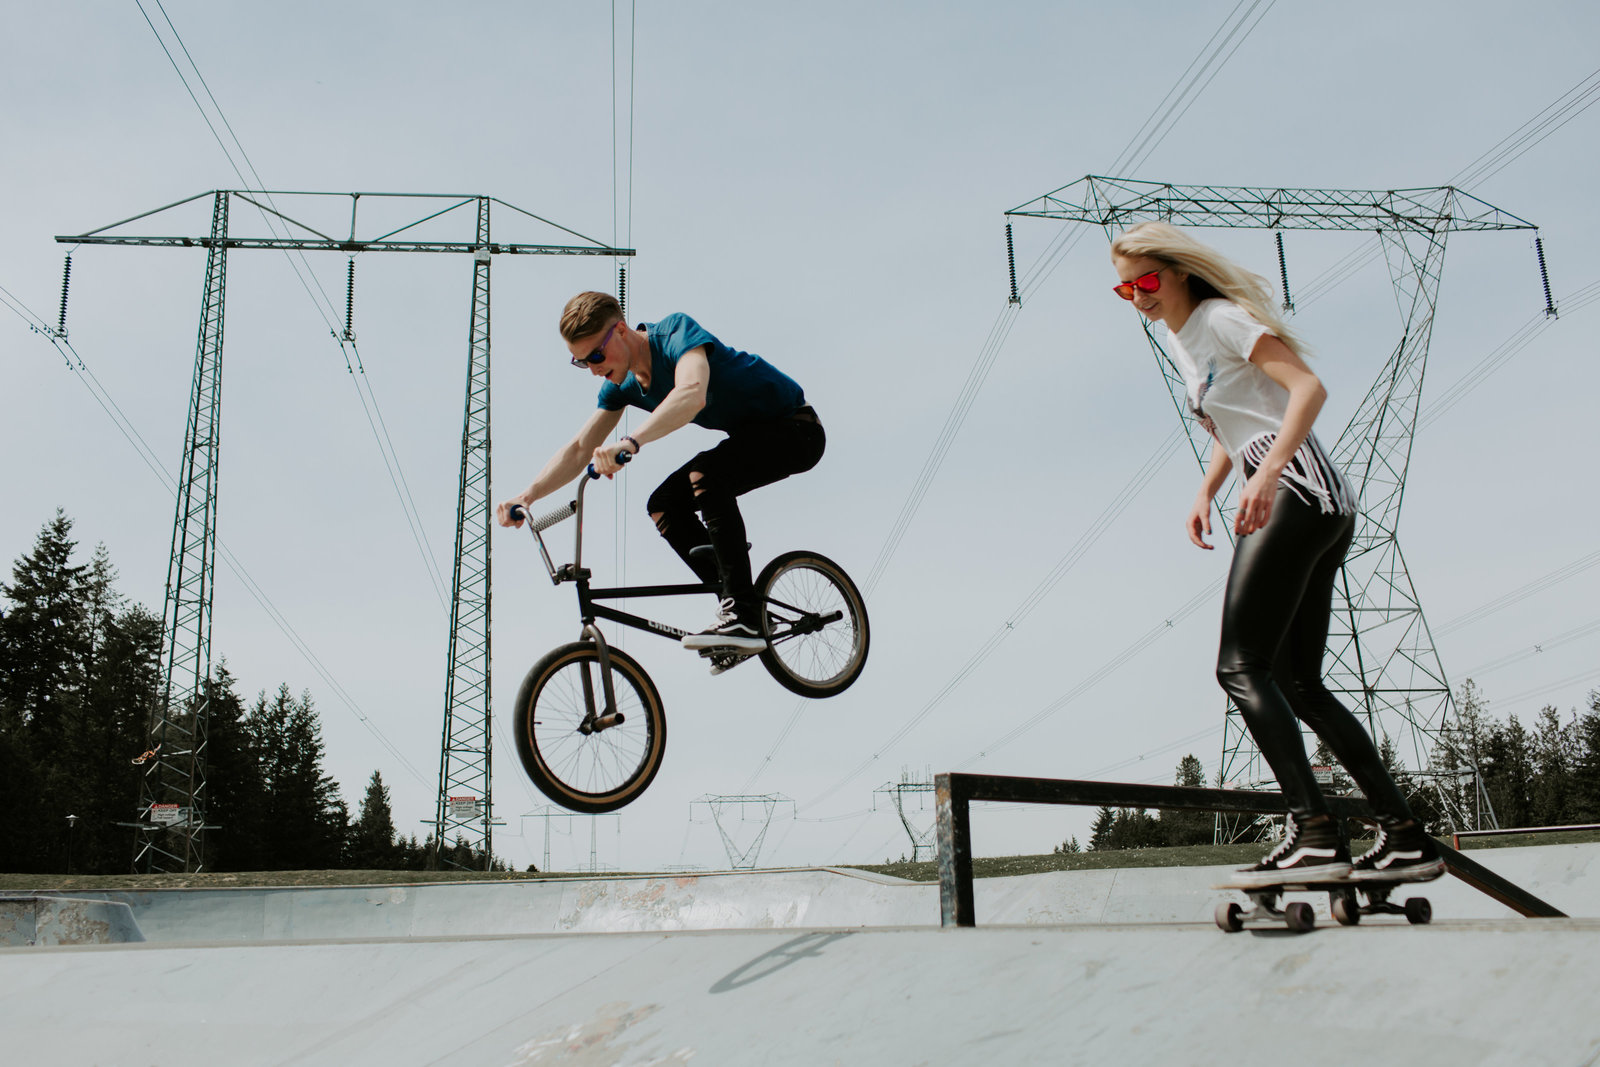 SKATE-PARK-ENGAGEMENT-MEGHAN-HEMSTRA-PHOTOGRAPHY-9